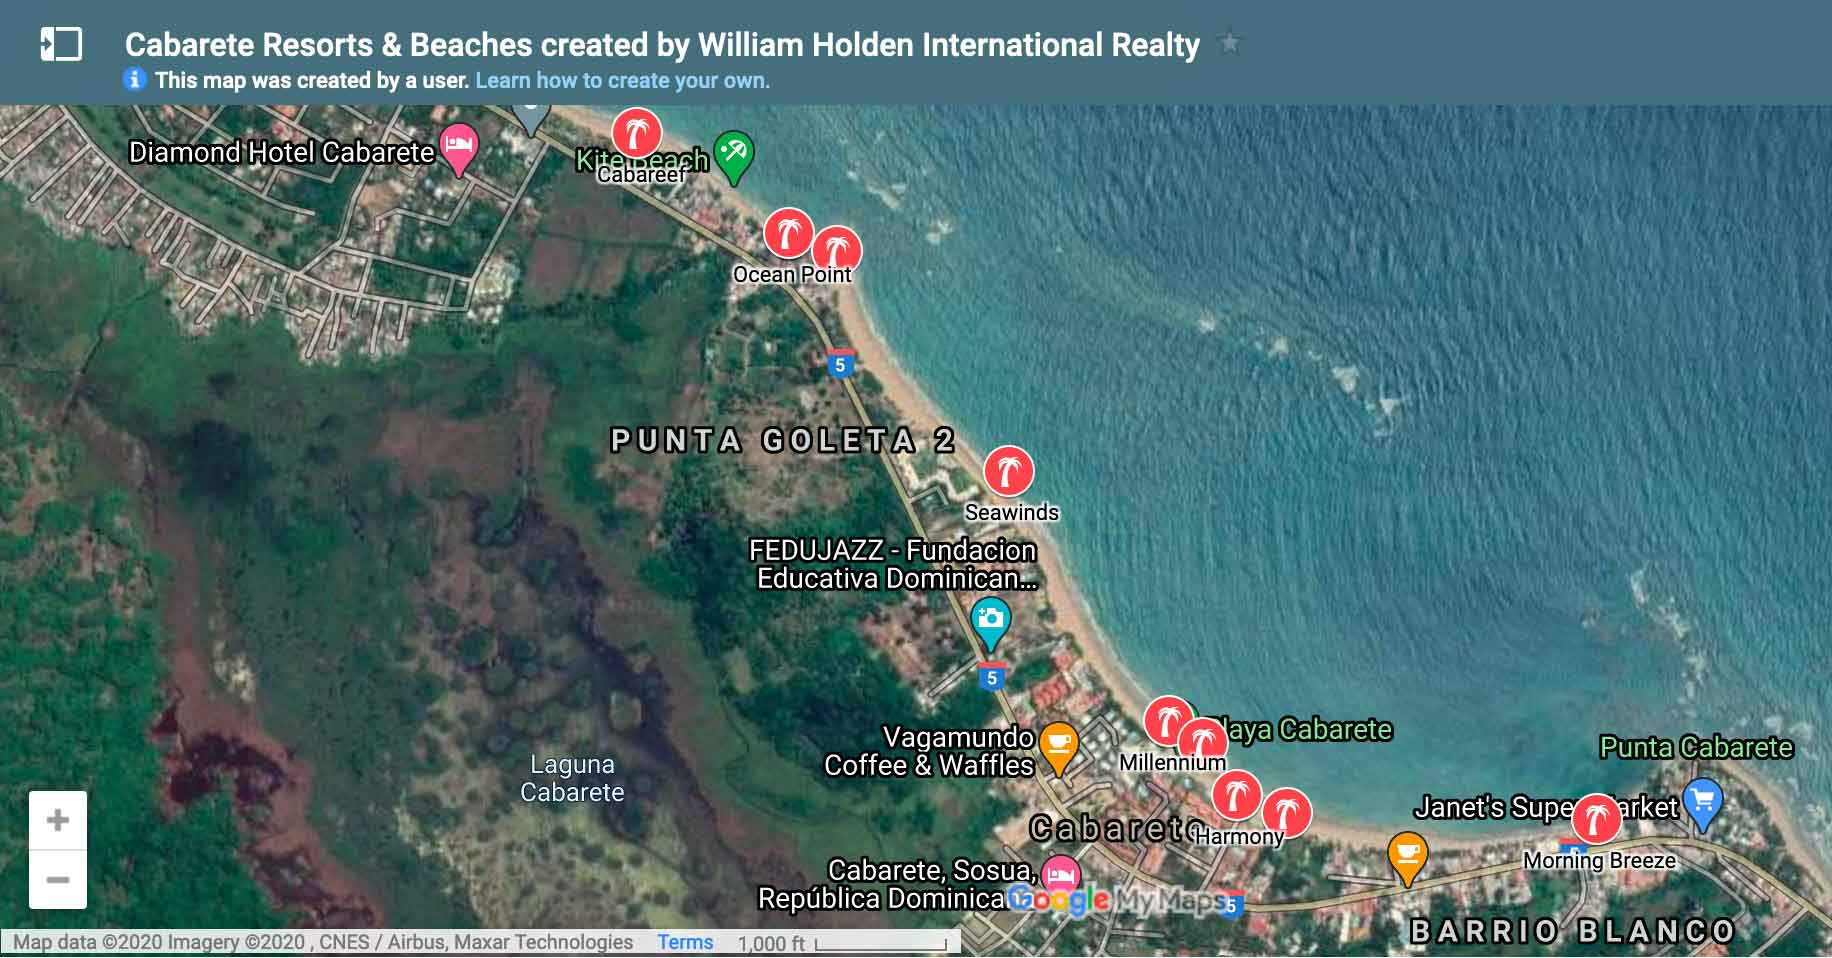 Cabarete-Resort-Map